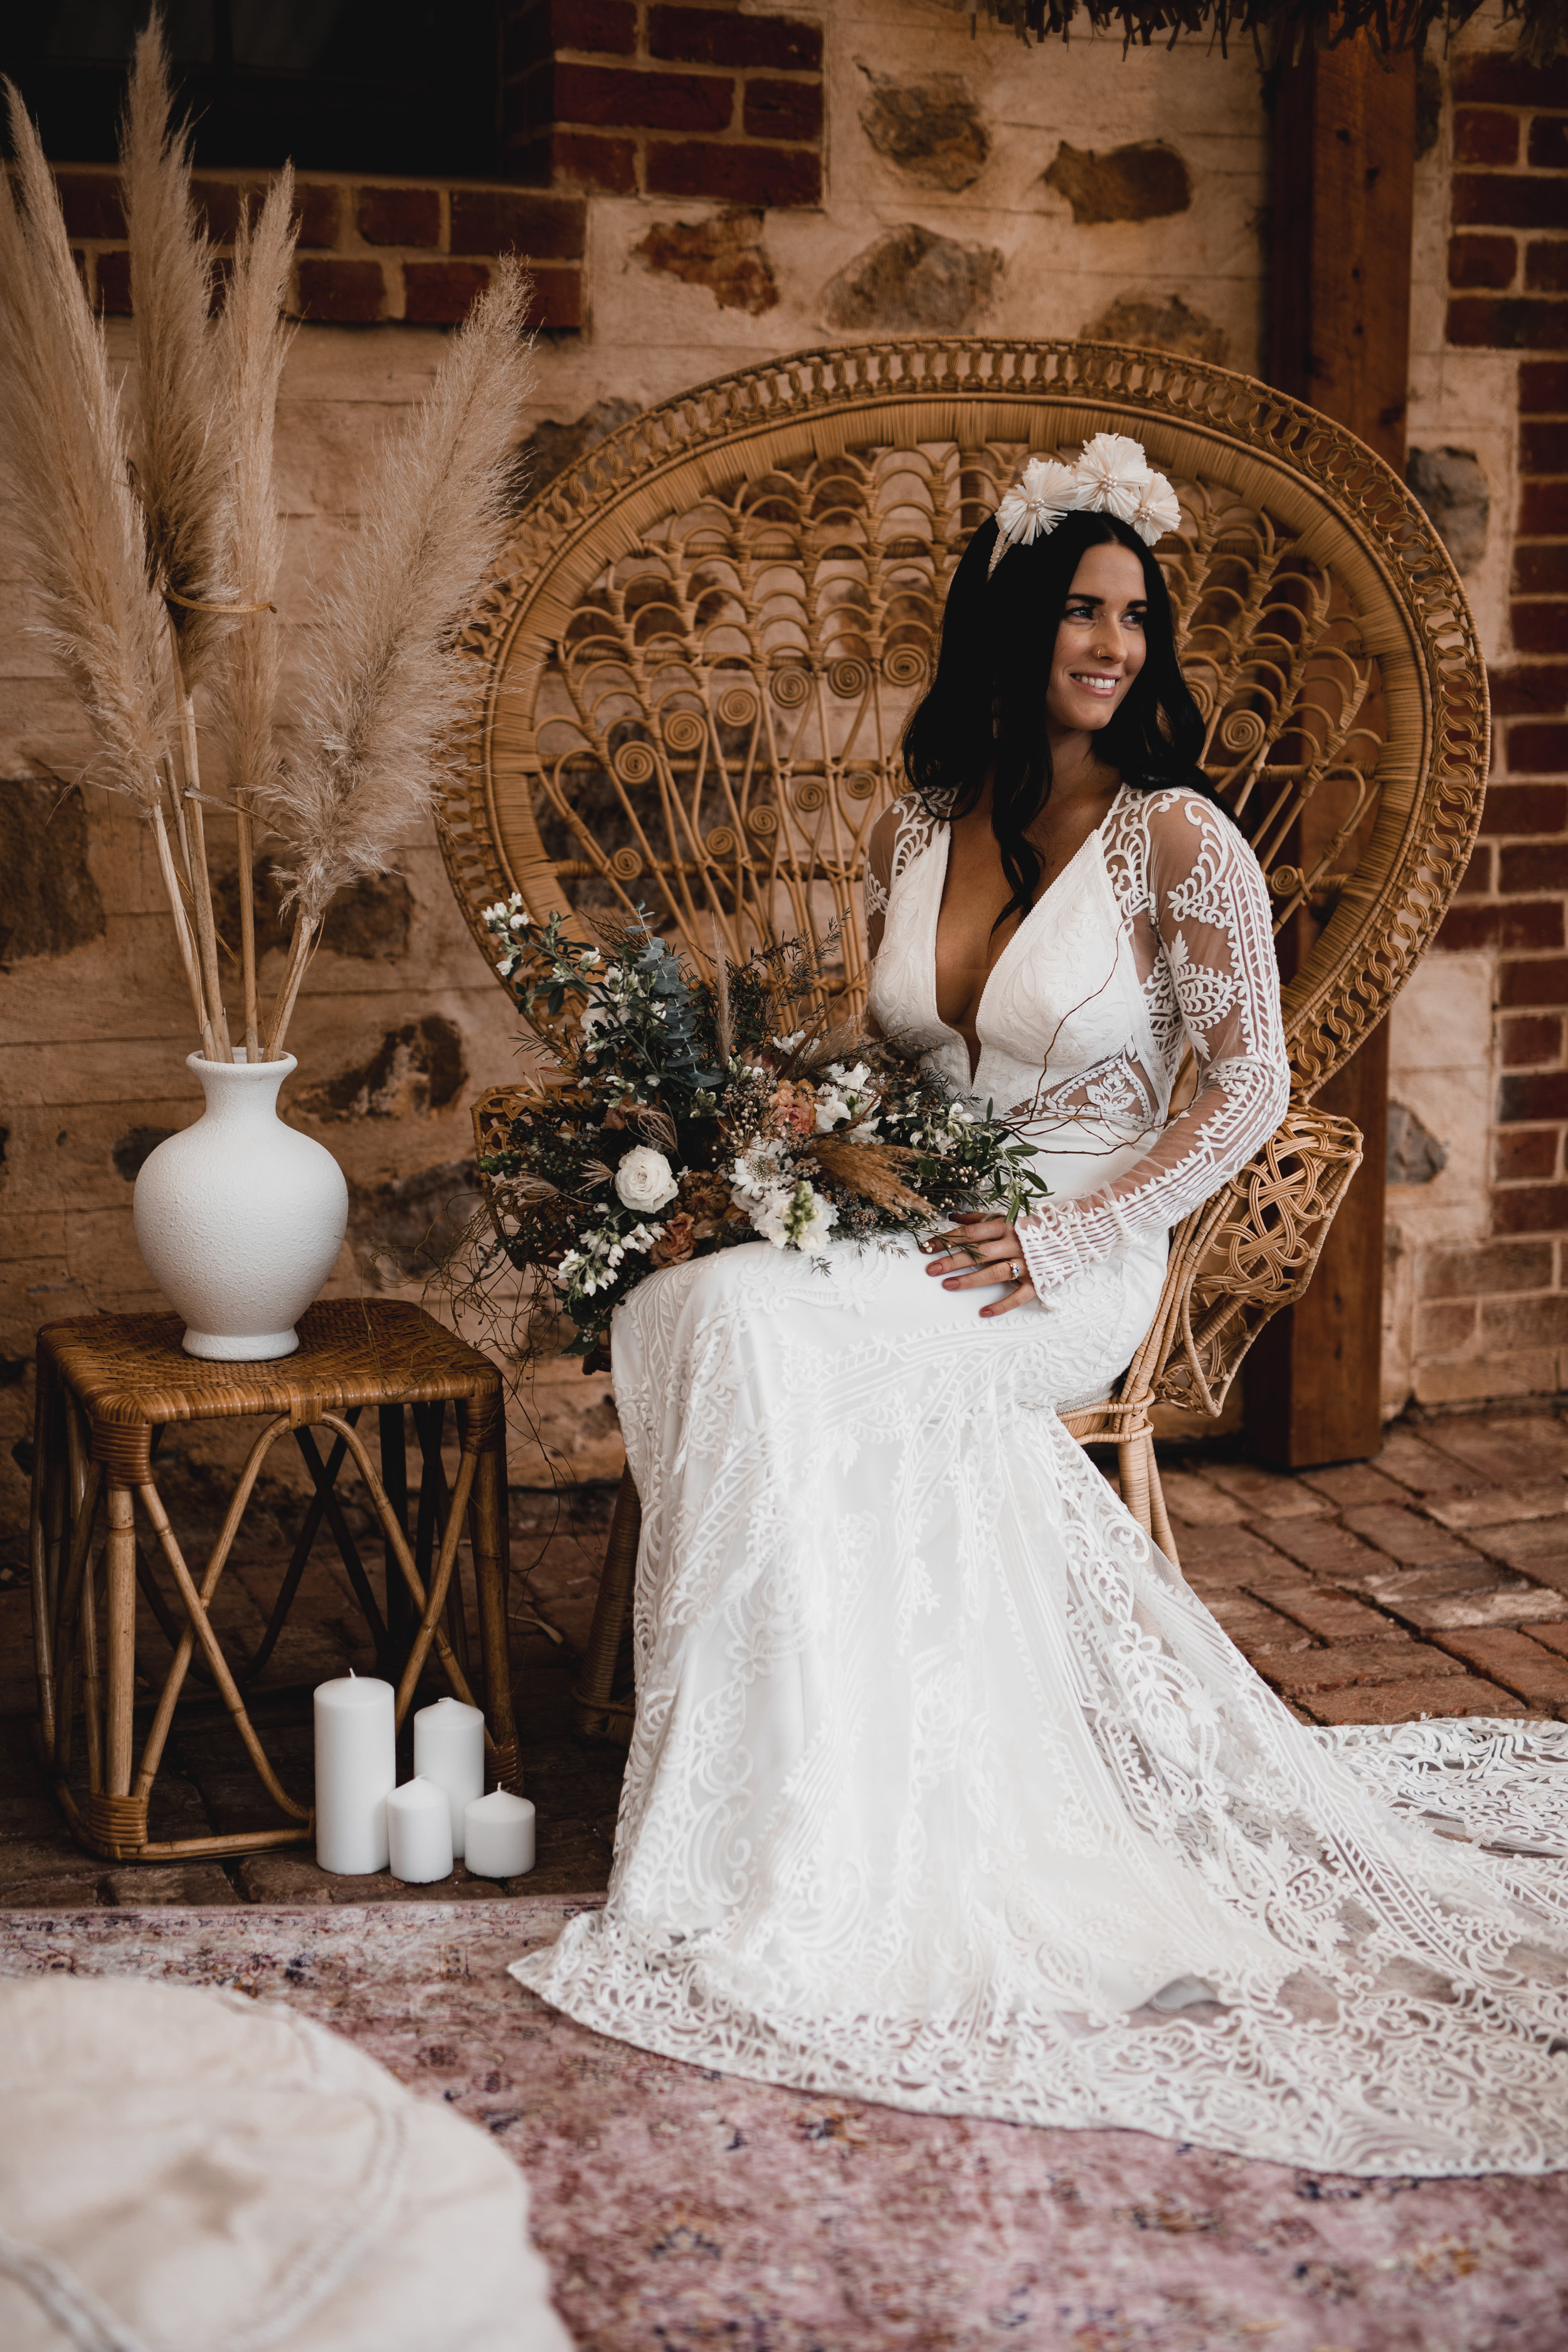 Bride - Annie, Photography - Jessica Mary Photography